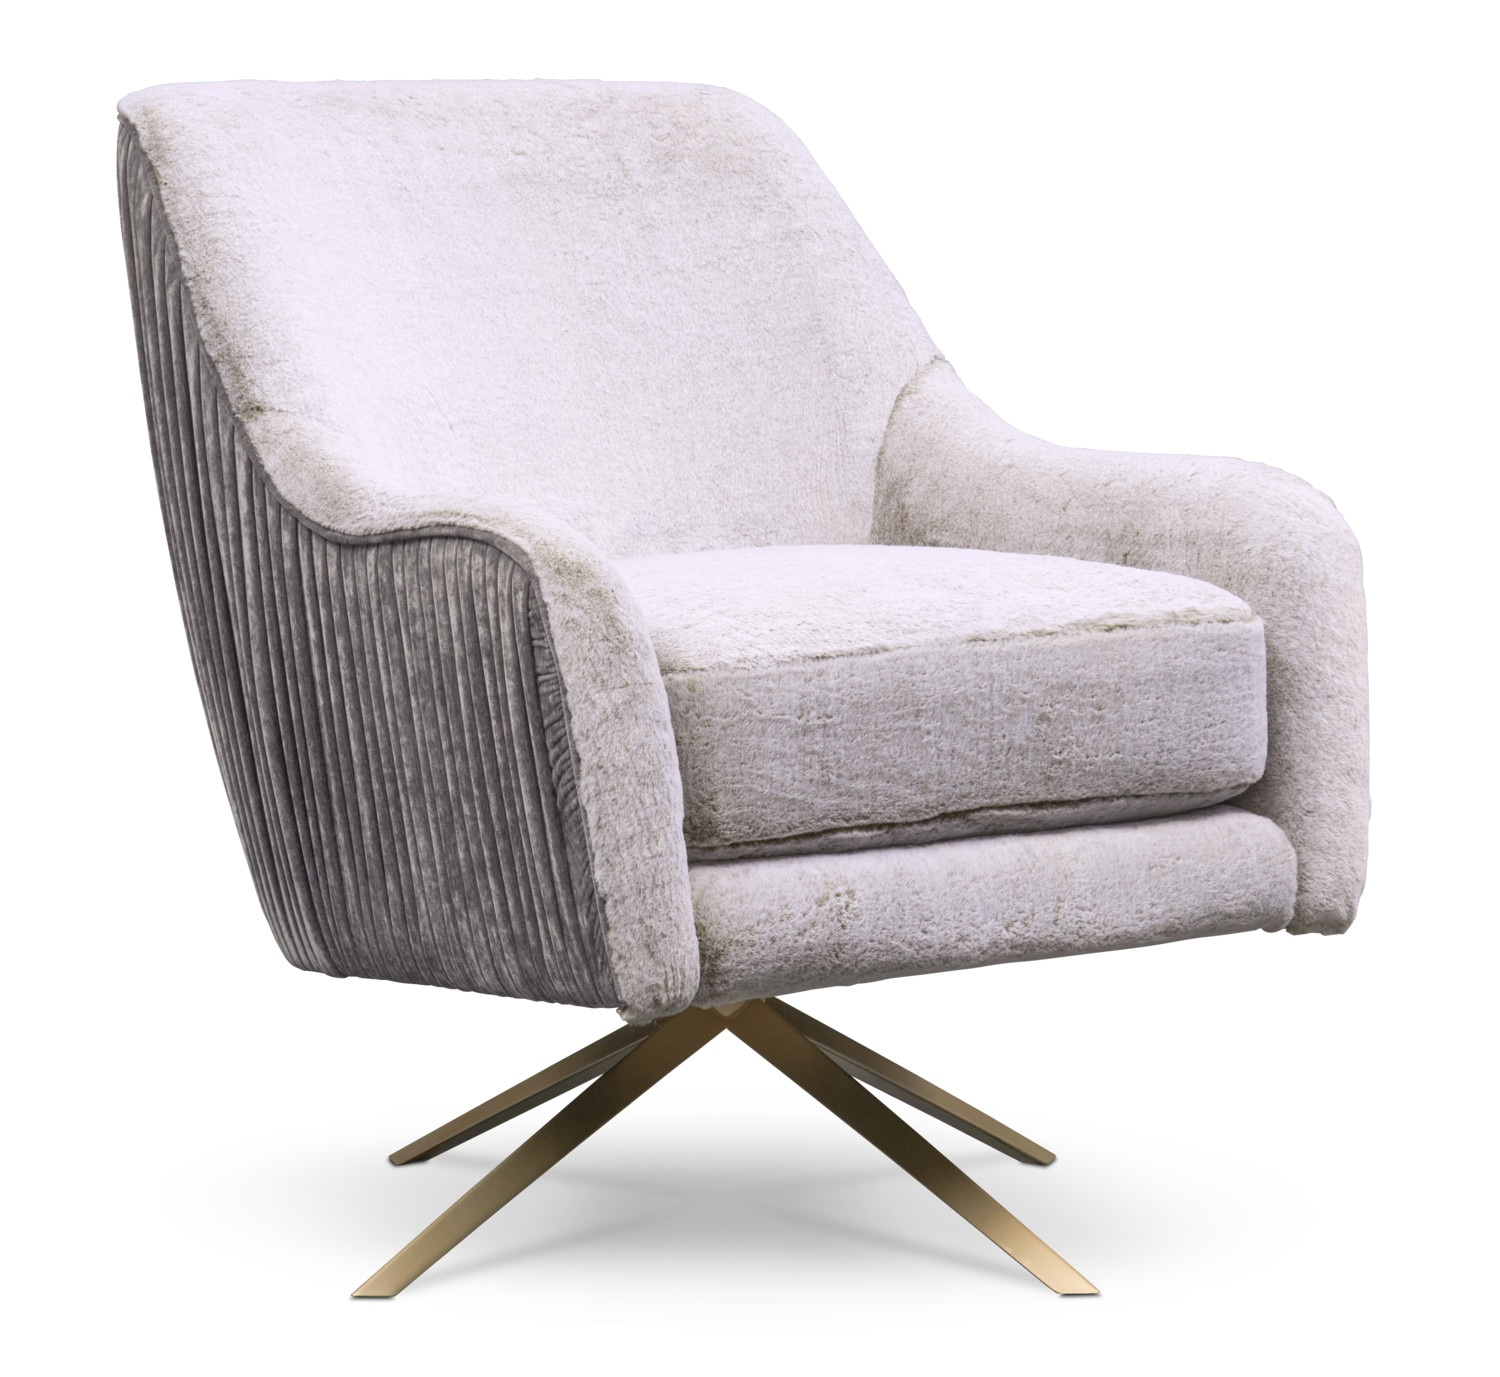 Margot Swivel Chair – Gray | American Signature Furniture Throughout Loft Black Swivel Accent Chairs (View 24 of 25)